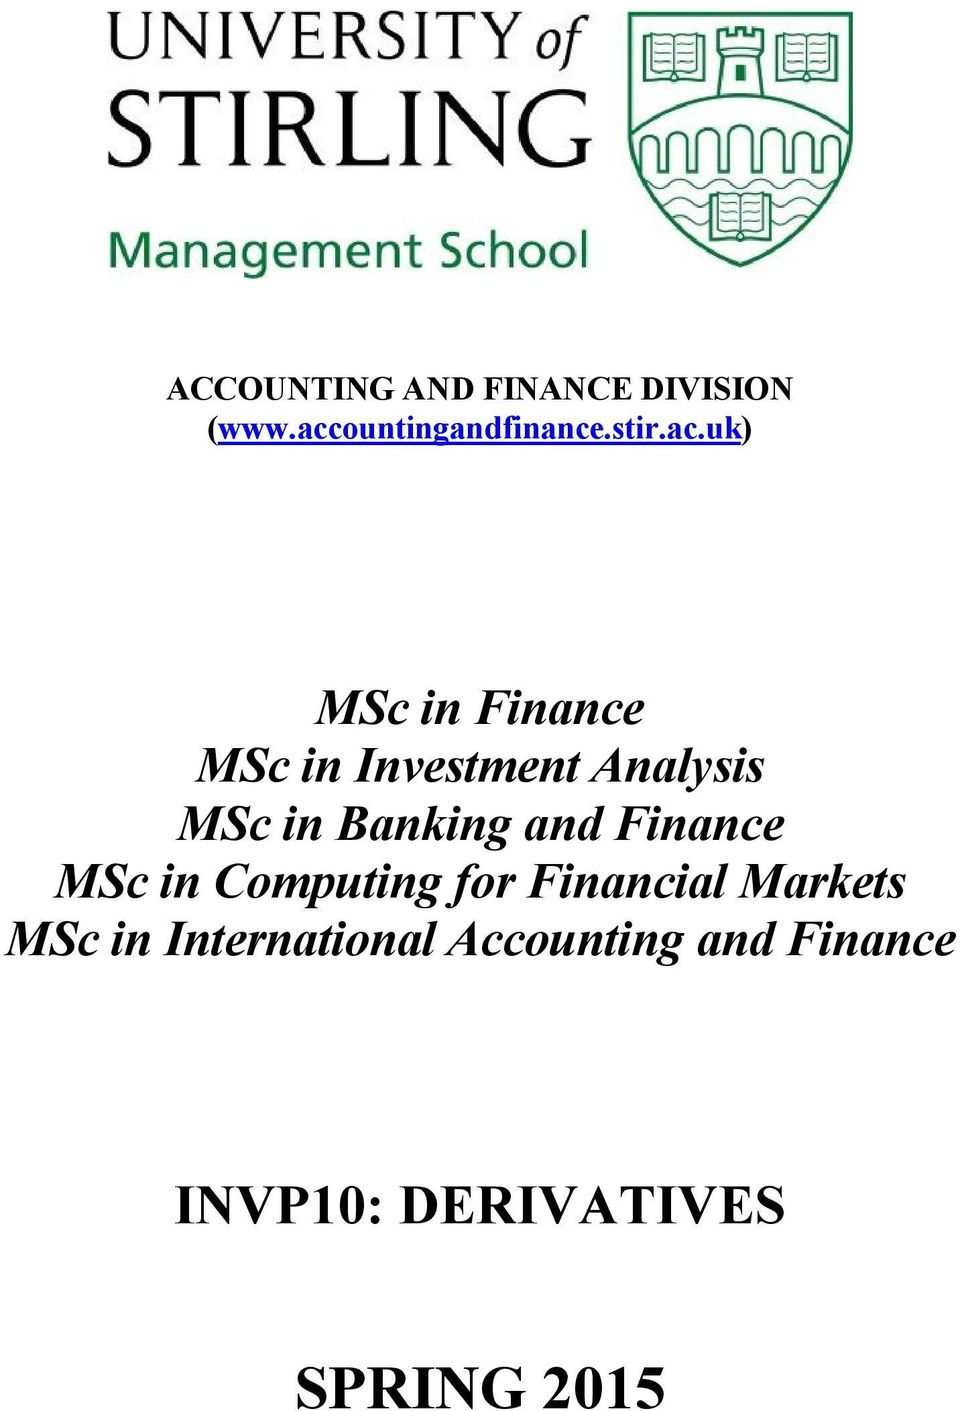 and Finance MSc in Computing for Financial Markets MSc in